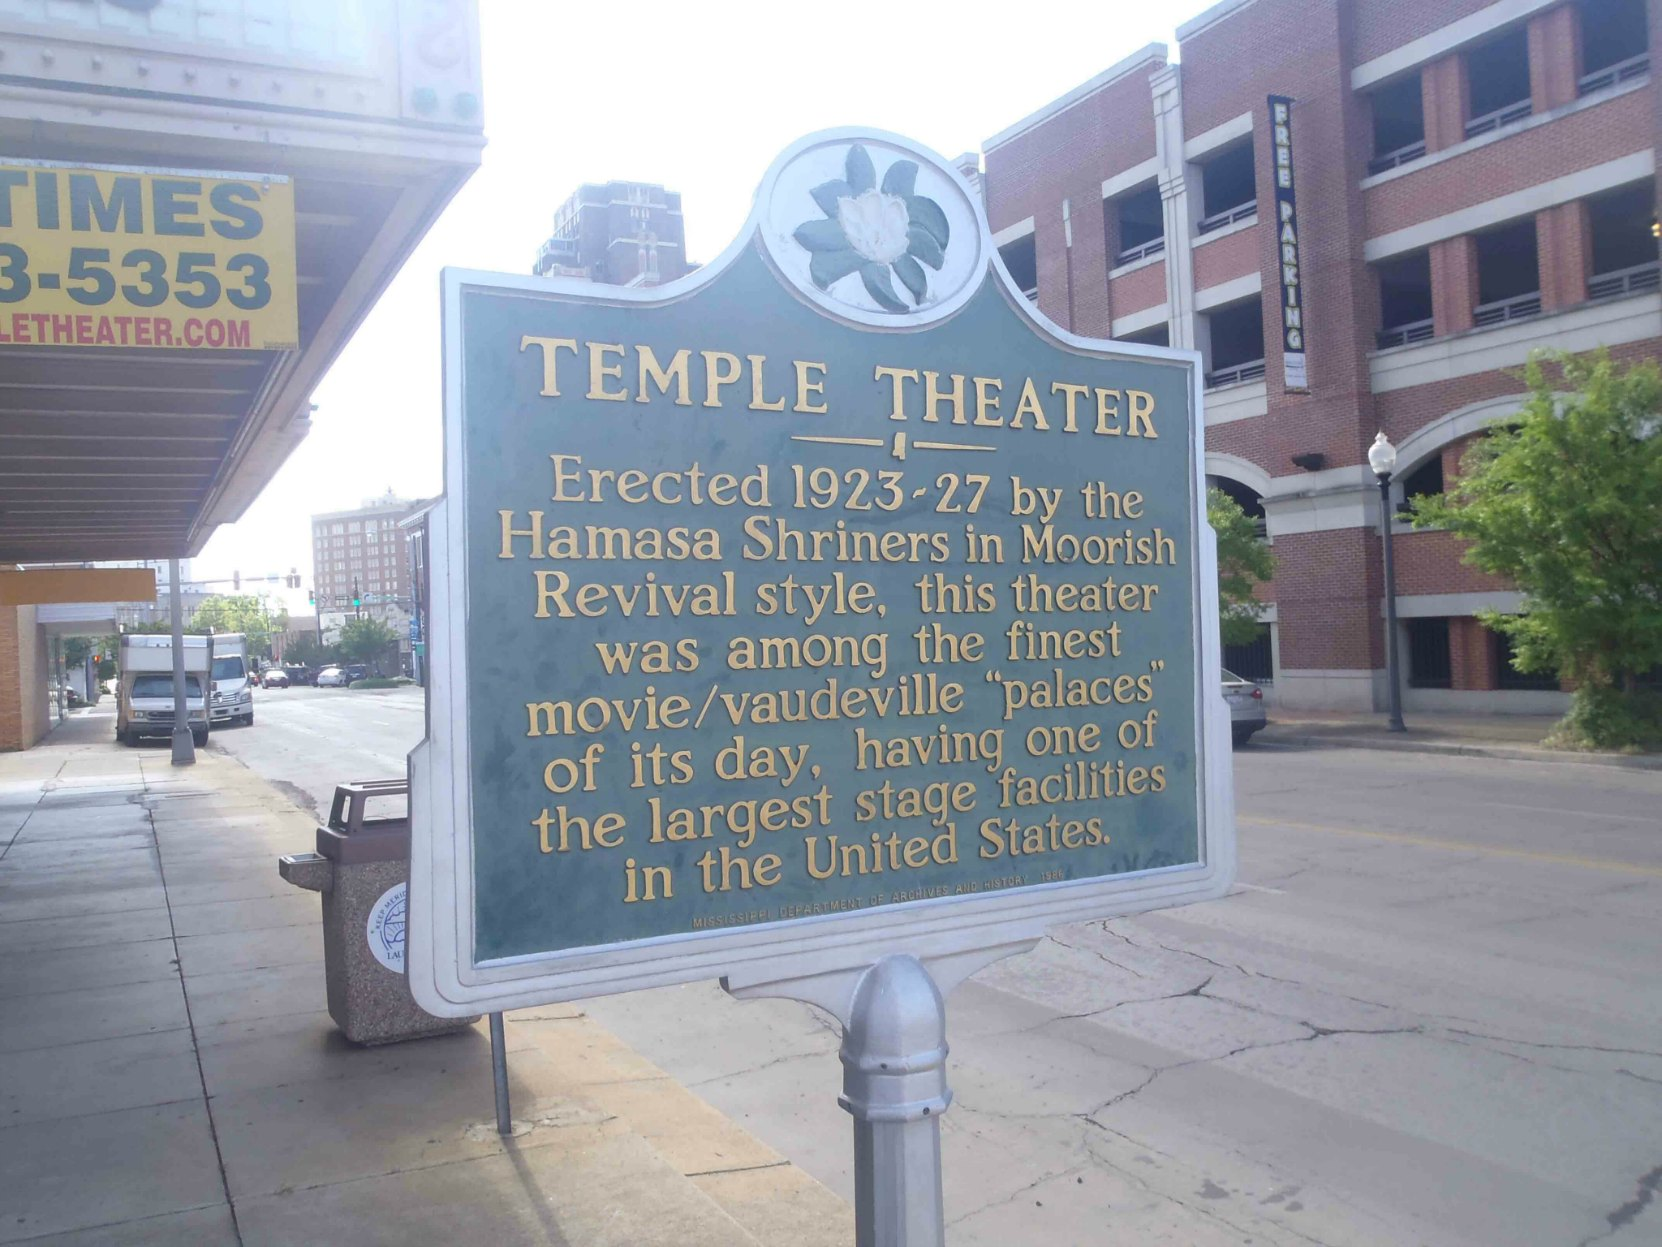 Mississippi Department of Archives & History marker outside the Temple Theater, Meridian, Mississippi.